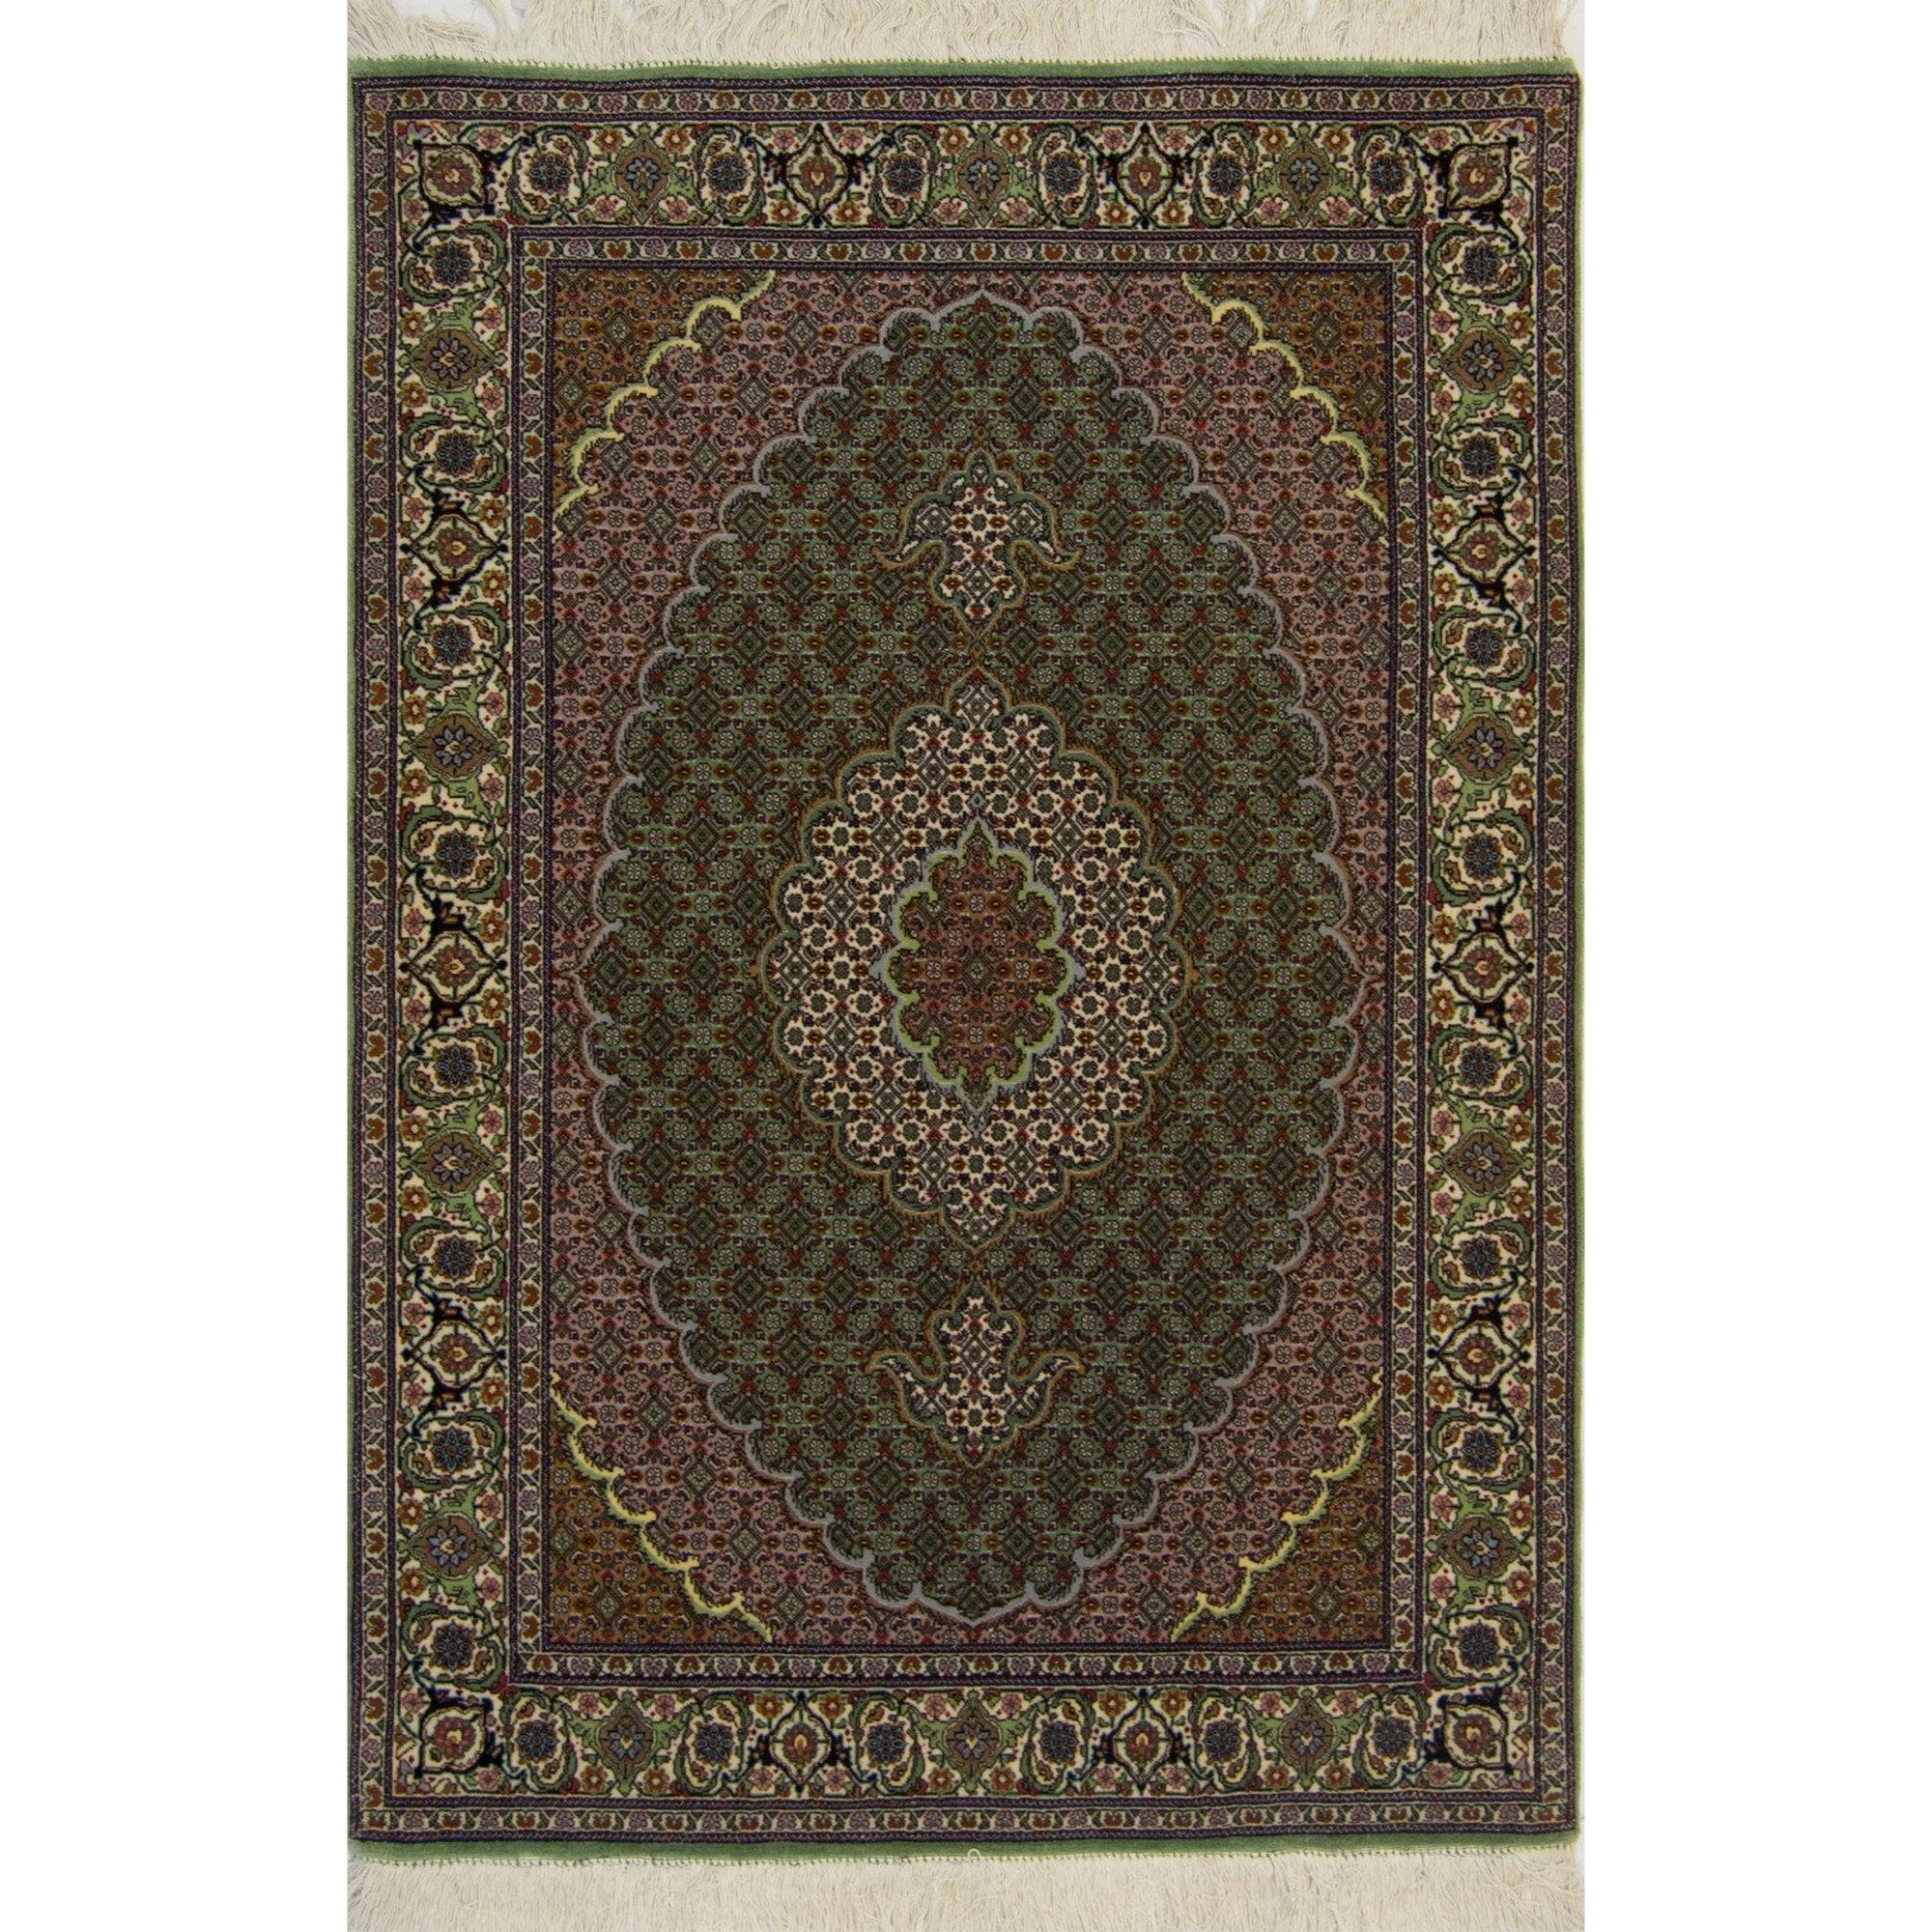 Super Fine Hand-knotted Persian Wool and Silk Tabriz - Mahi Rug 103 cm x 148 cm Persian-Rug | House-of-Haghi | NewMarket | Auckland | NZ | Handmade Persian Rugs | Hand Knotted Persian Rugs